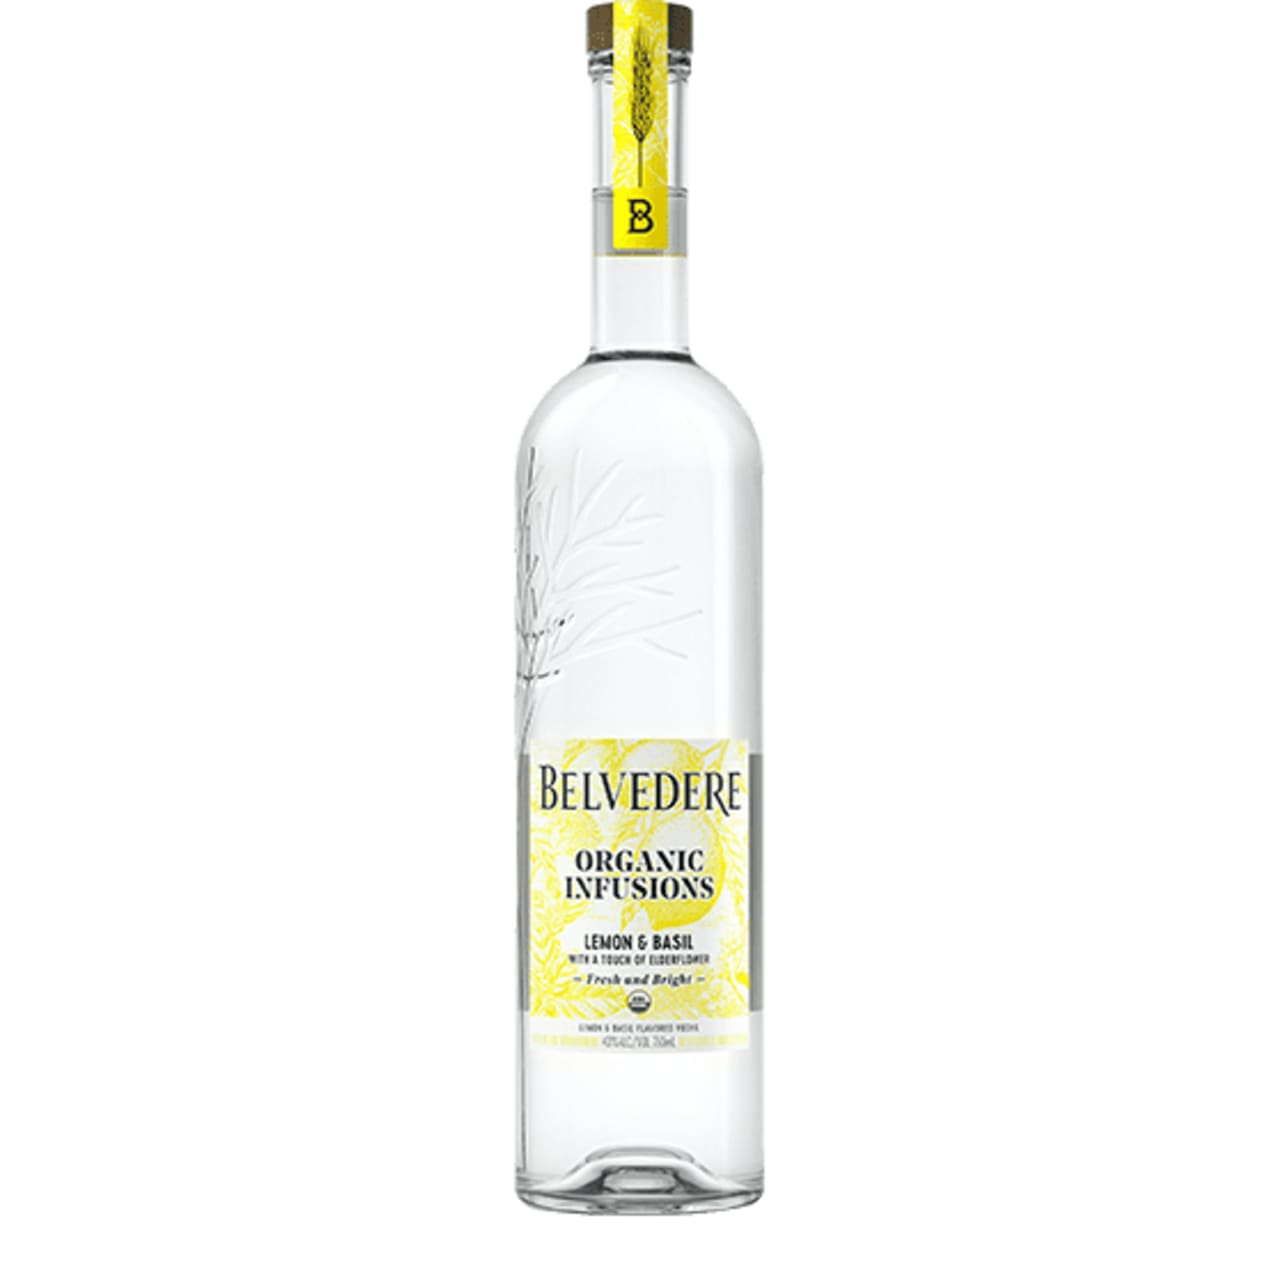 Product Image - Belvedere Organic Infusions Lemon and Basil